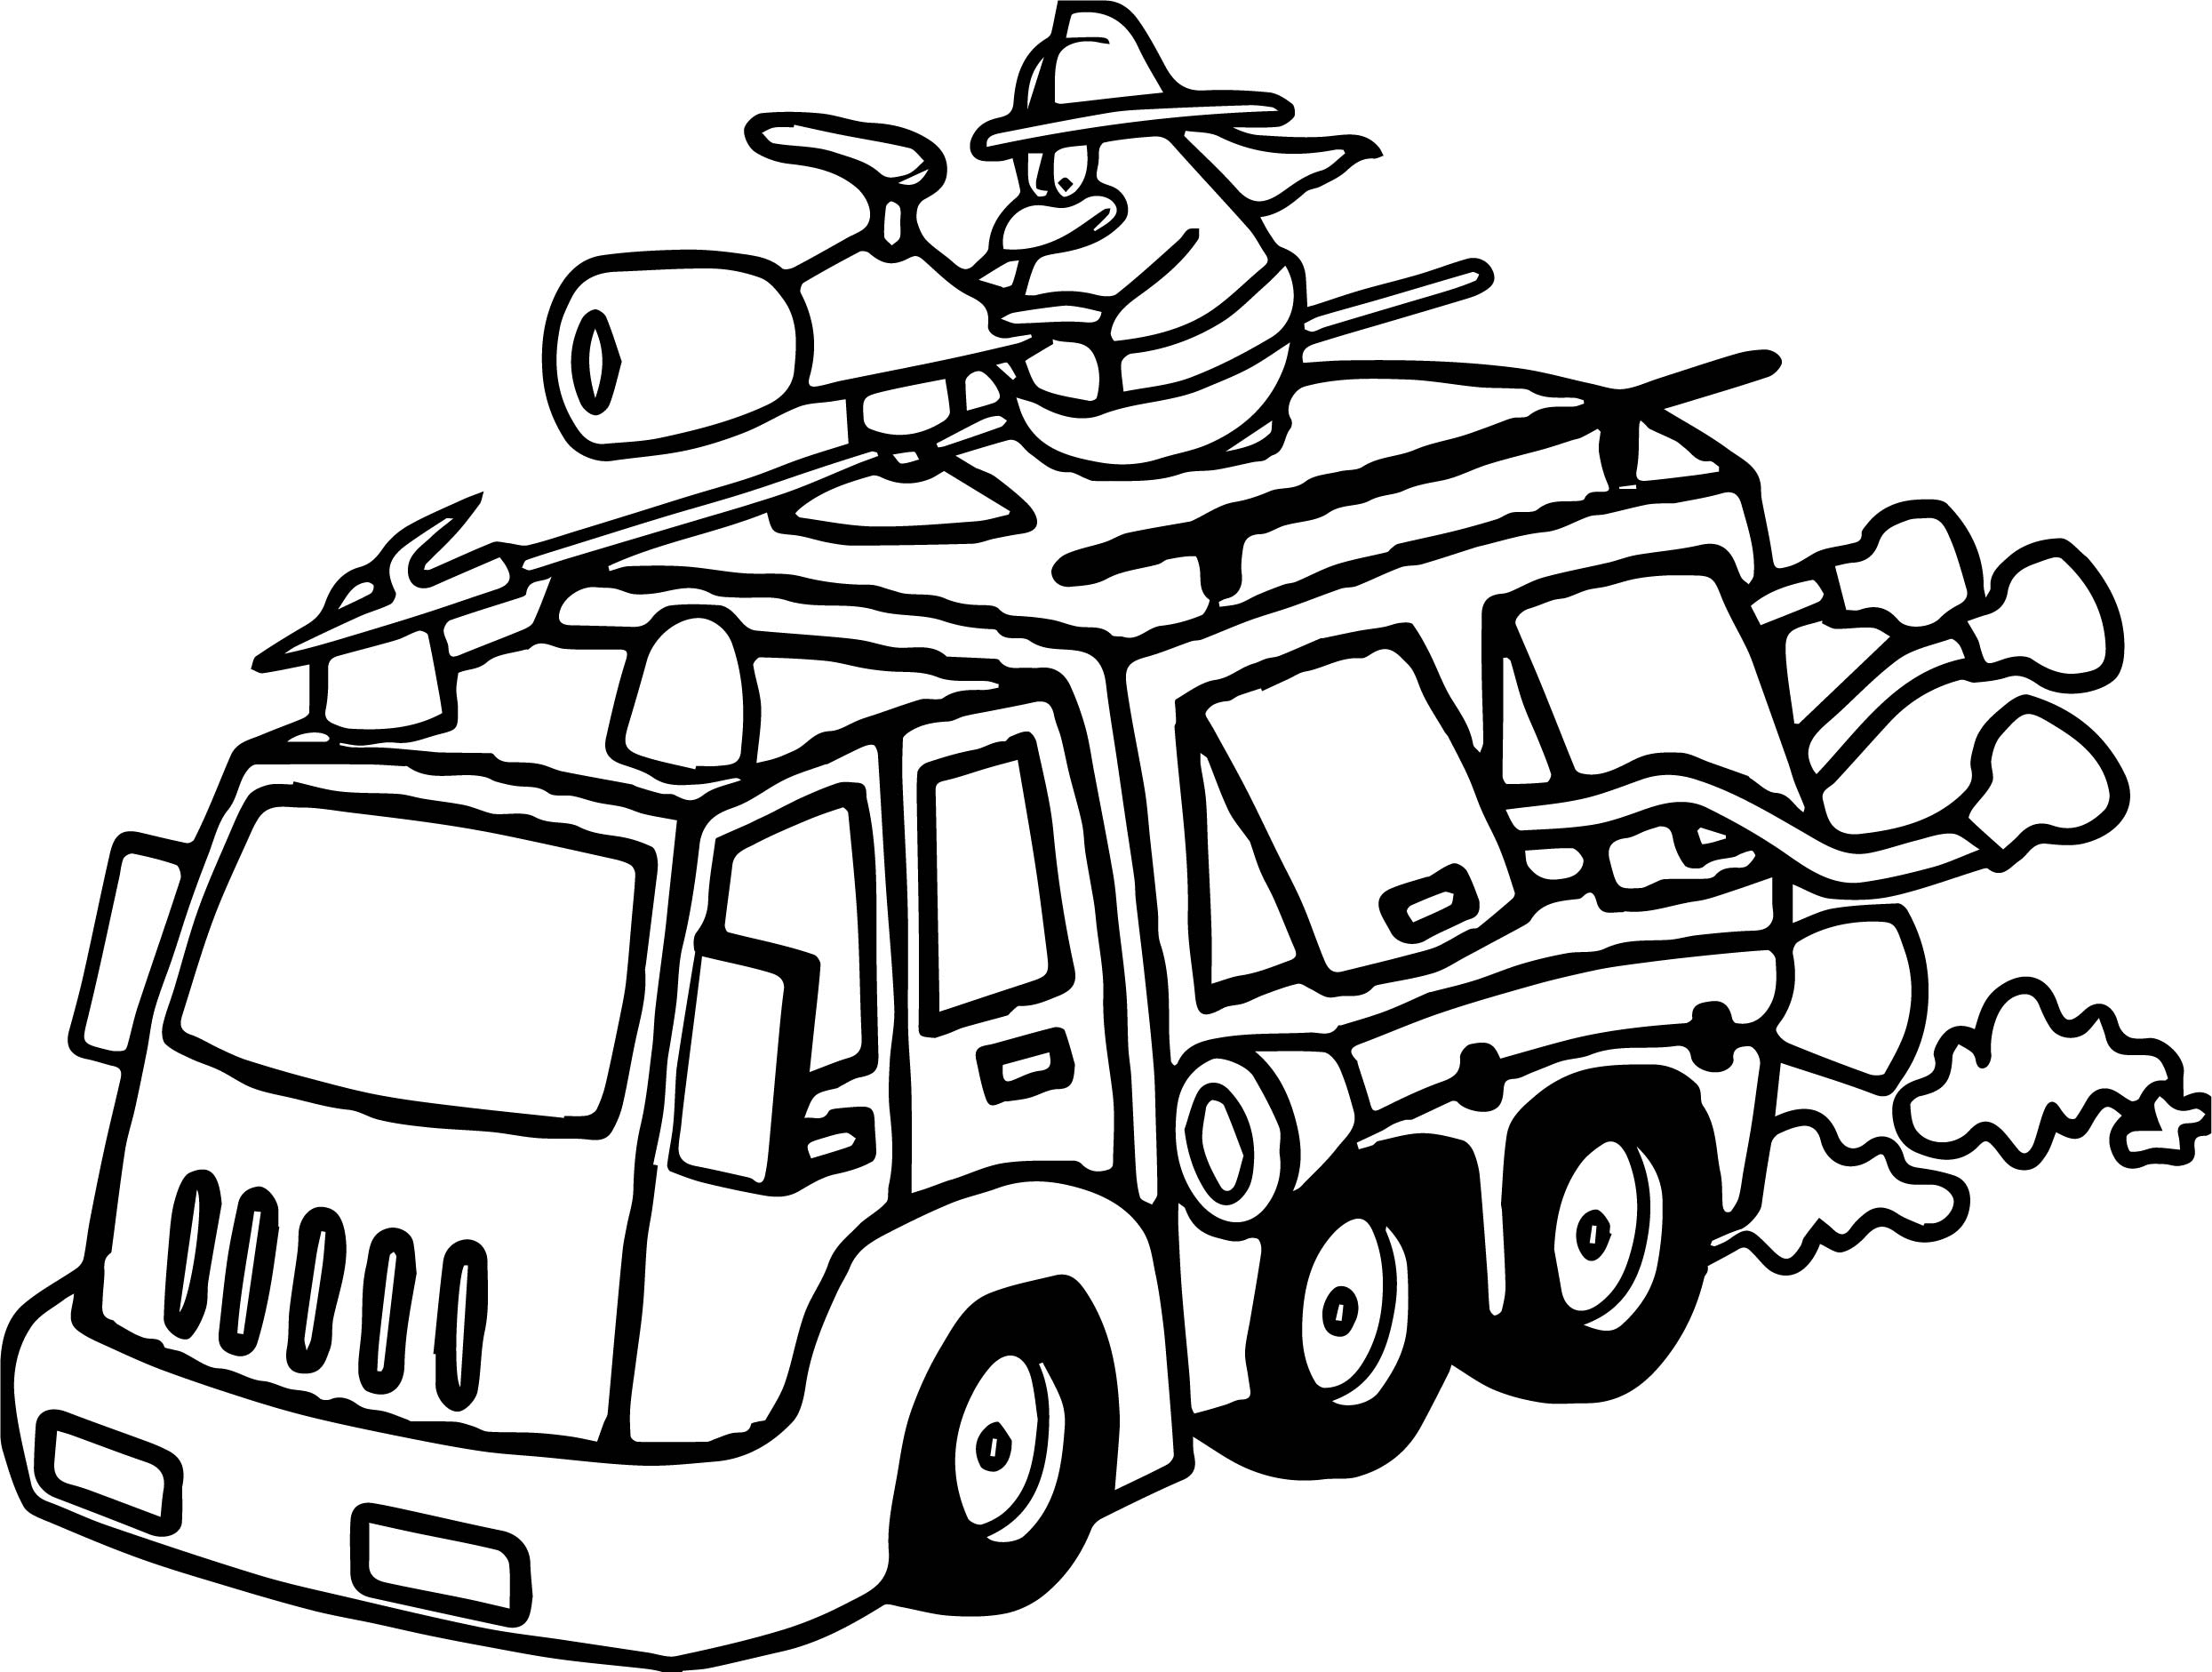 emergency vehicle coloring pages emergency car coloring page free printable coloring pages coloring vehicle pages emergency